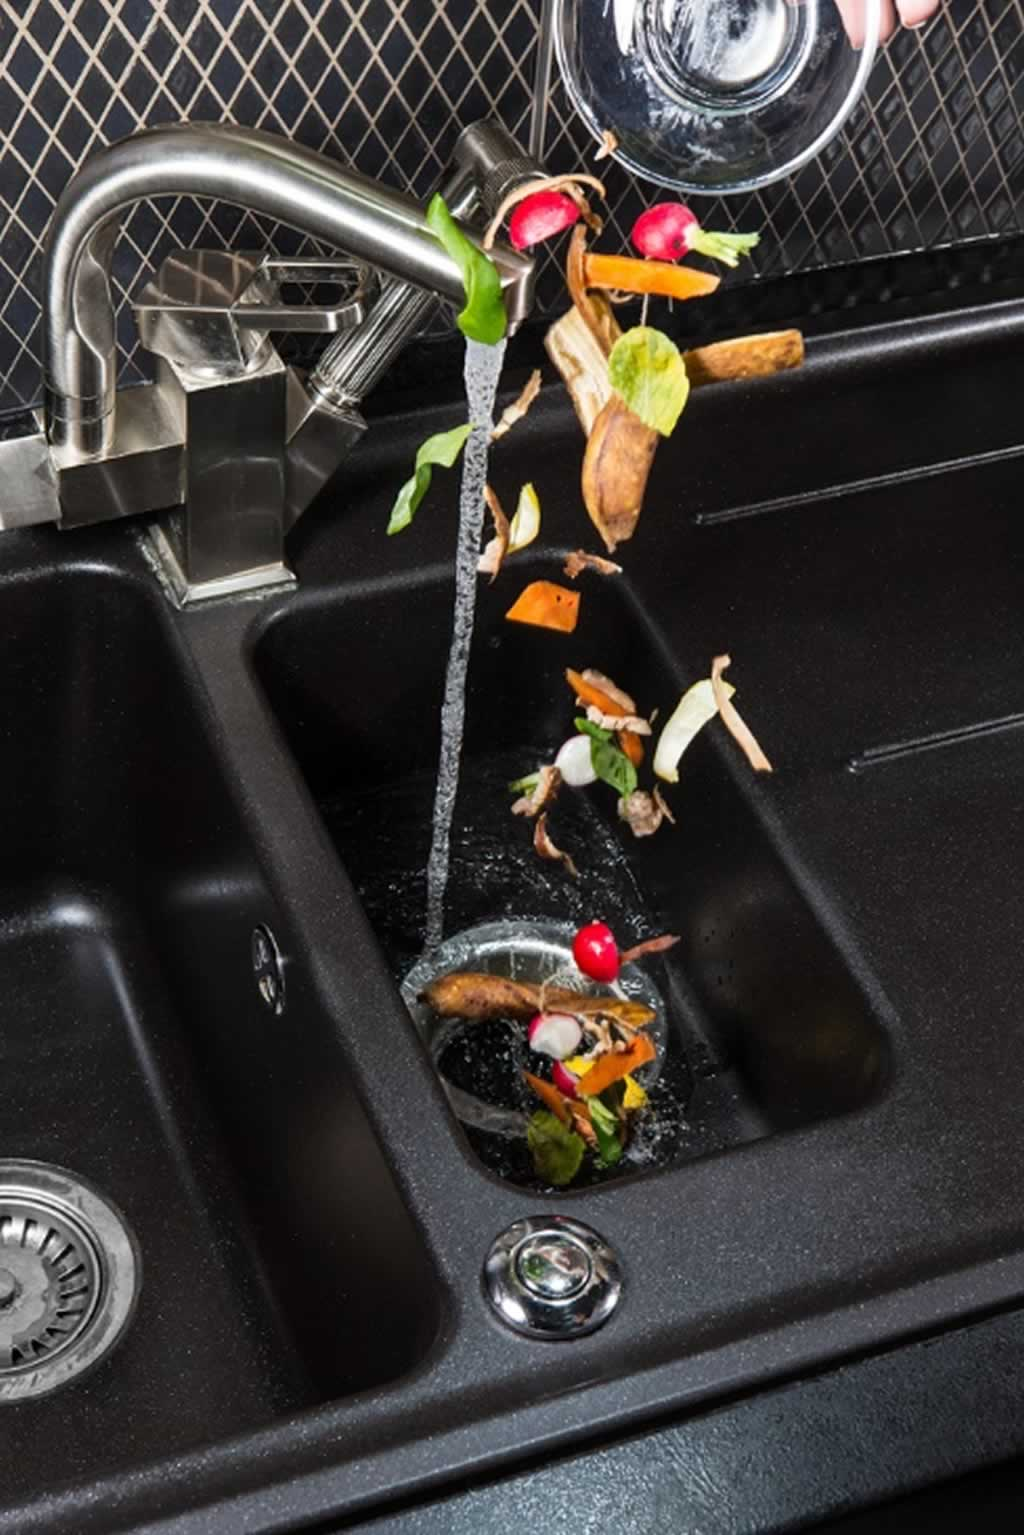 Invaluable tips for avoiding plumbing mishaps - waste disposal